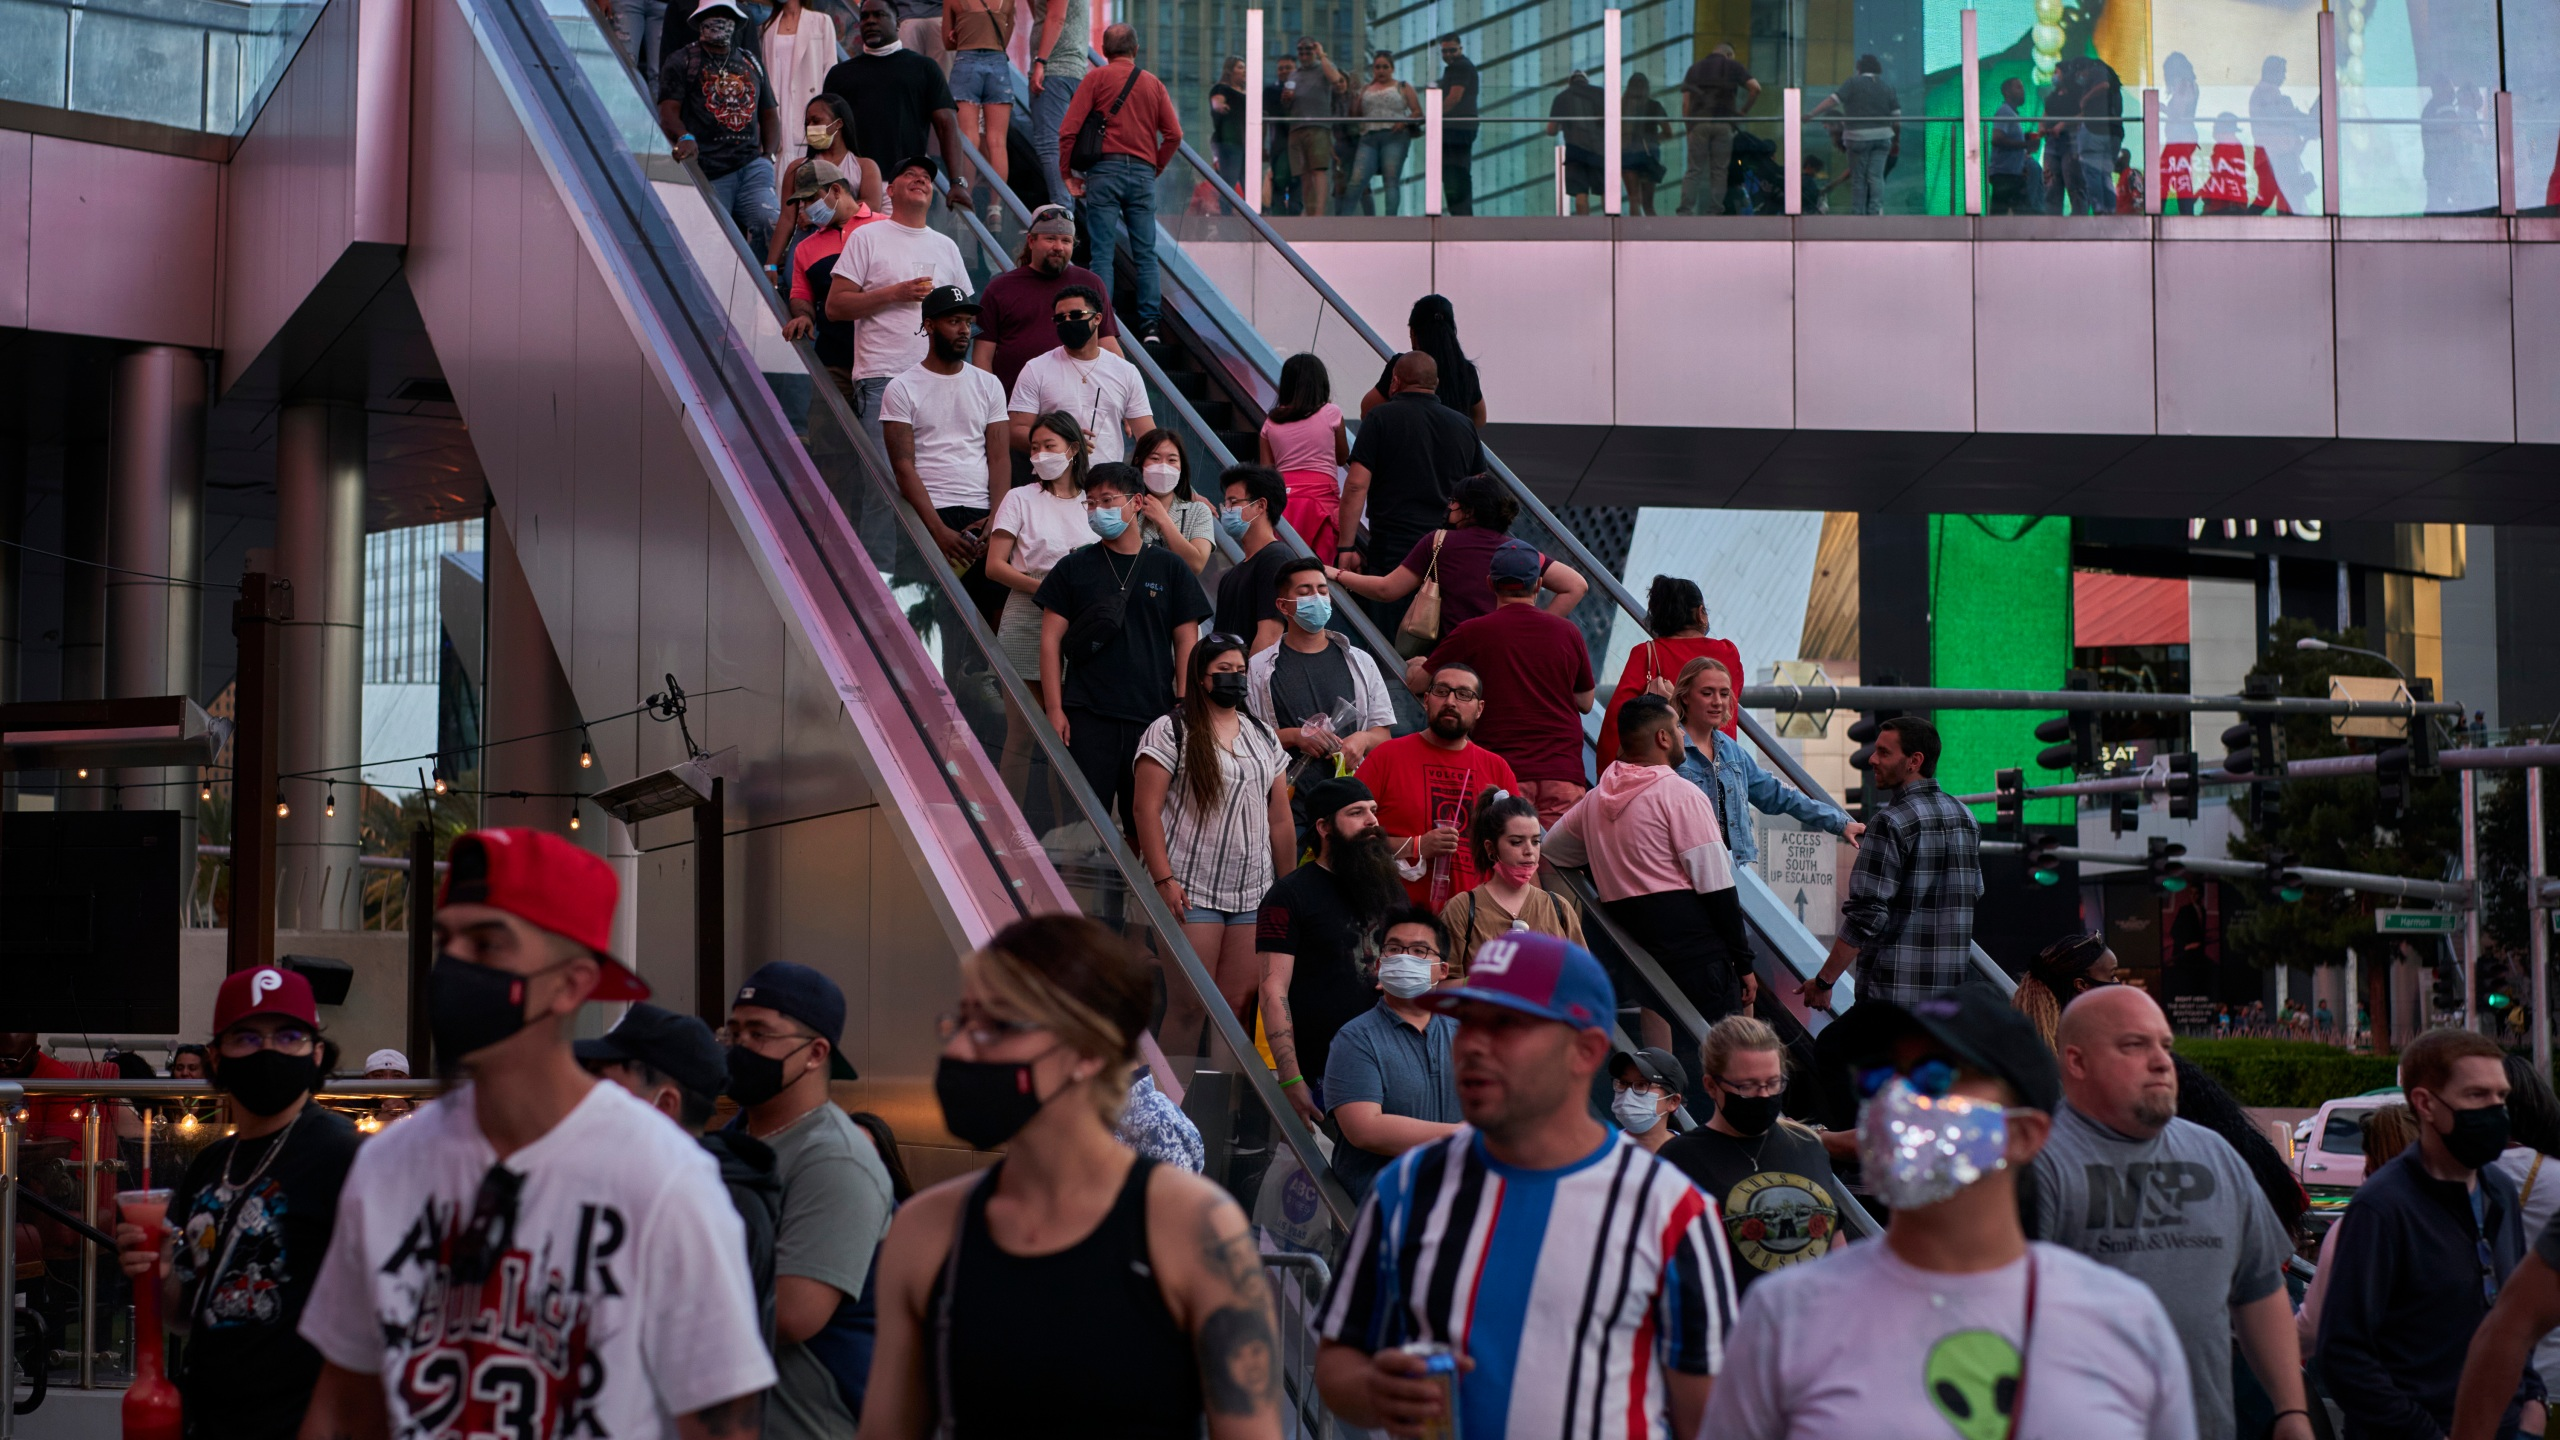 People ride an escalator along the Las Vegas Strip, Saturday, April 24, 2021, in Las Vegas. The tourism-dependent city is bustling again after casino capacity limits were raised Saturday, May 1, to 80% and person-to-person distancing dropped to 3 feet (0.9 meters). (AP Photo/John Locher)